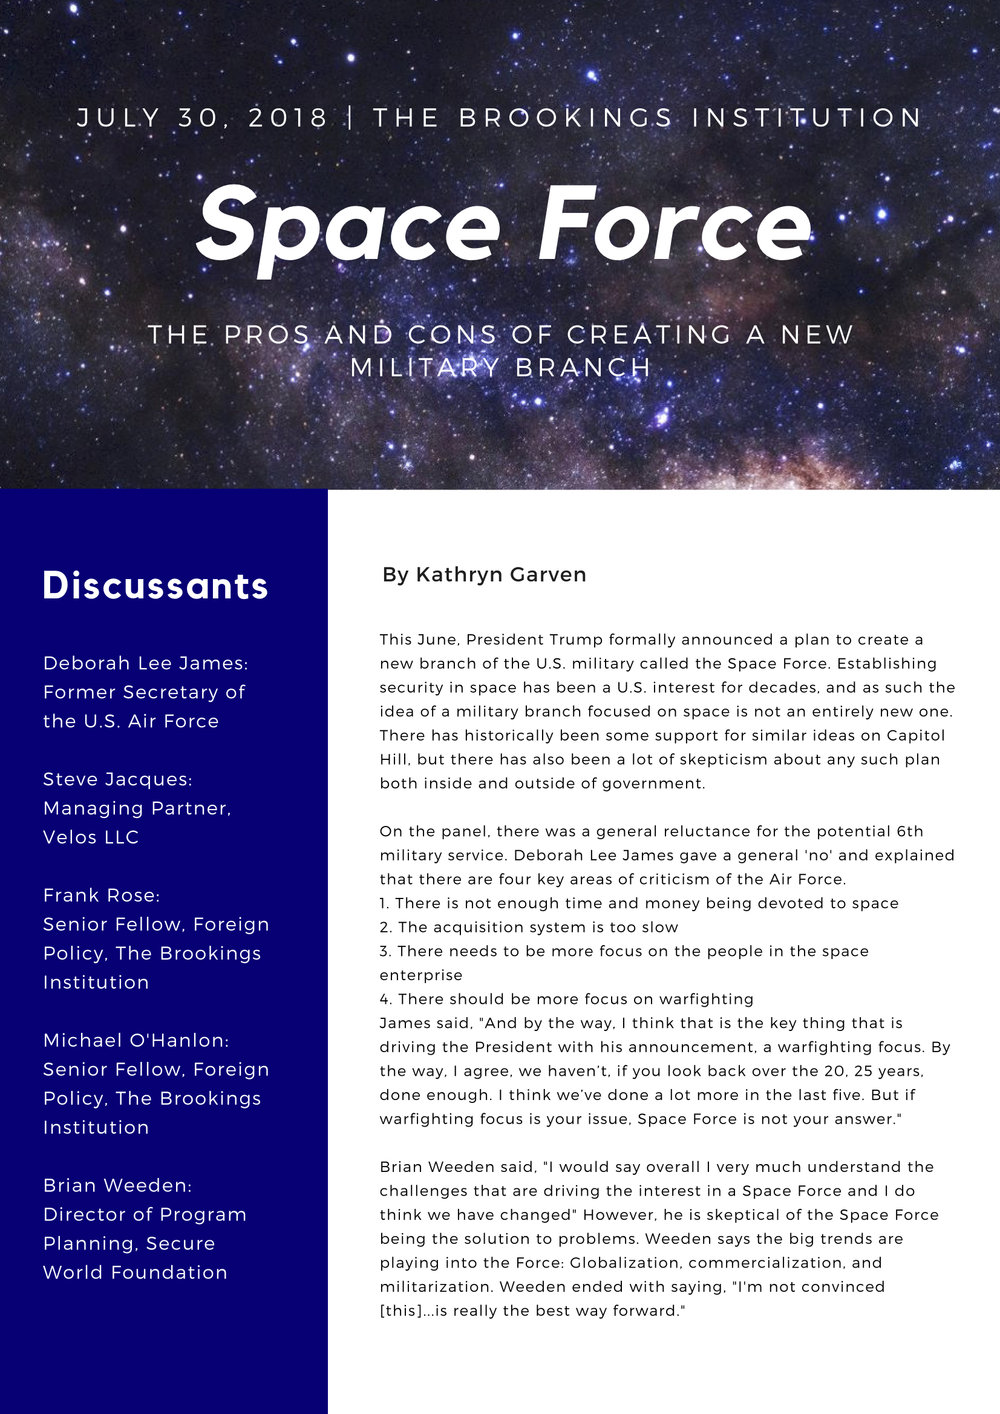 Space Force Blog1.jpg